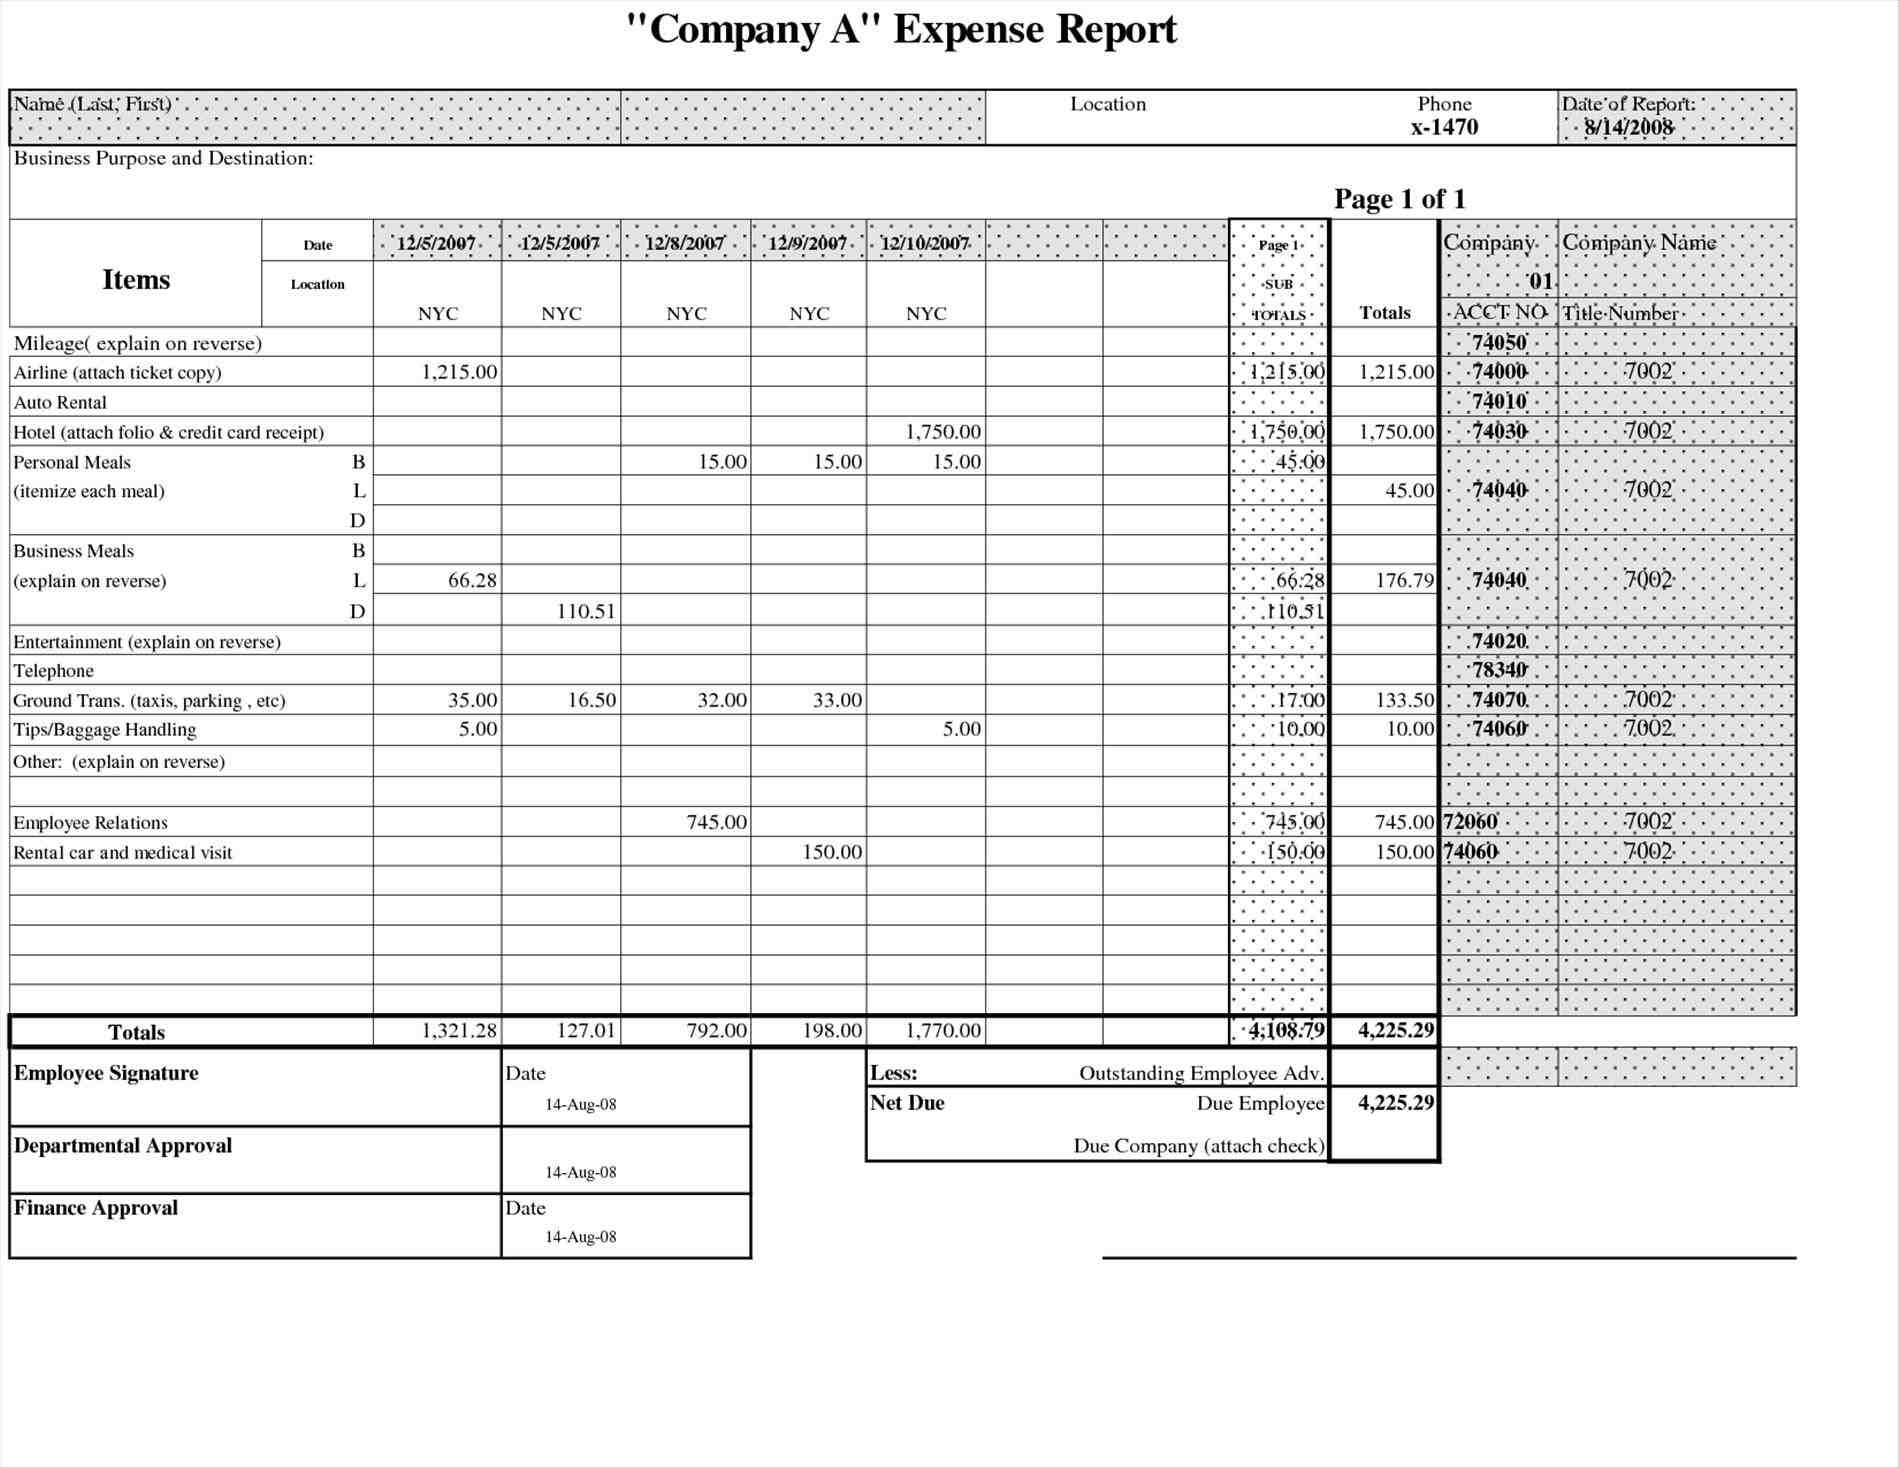 monthly Excel Templates For Business Expenses business expenses spreadsheet template zoroblaszczakcorhzoroblaszczakco expense for taxes fresh excel rhsancdorg business Excel Templates